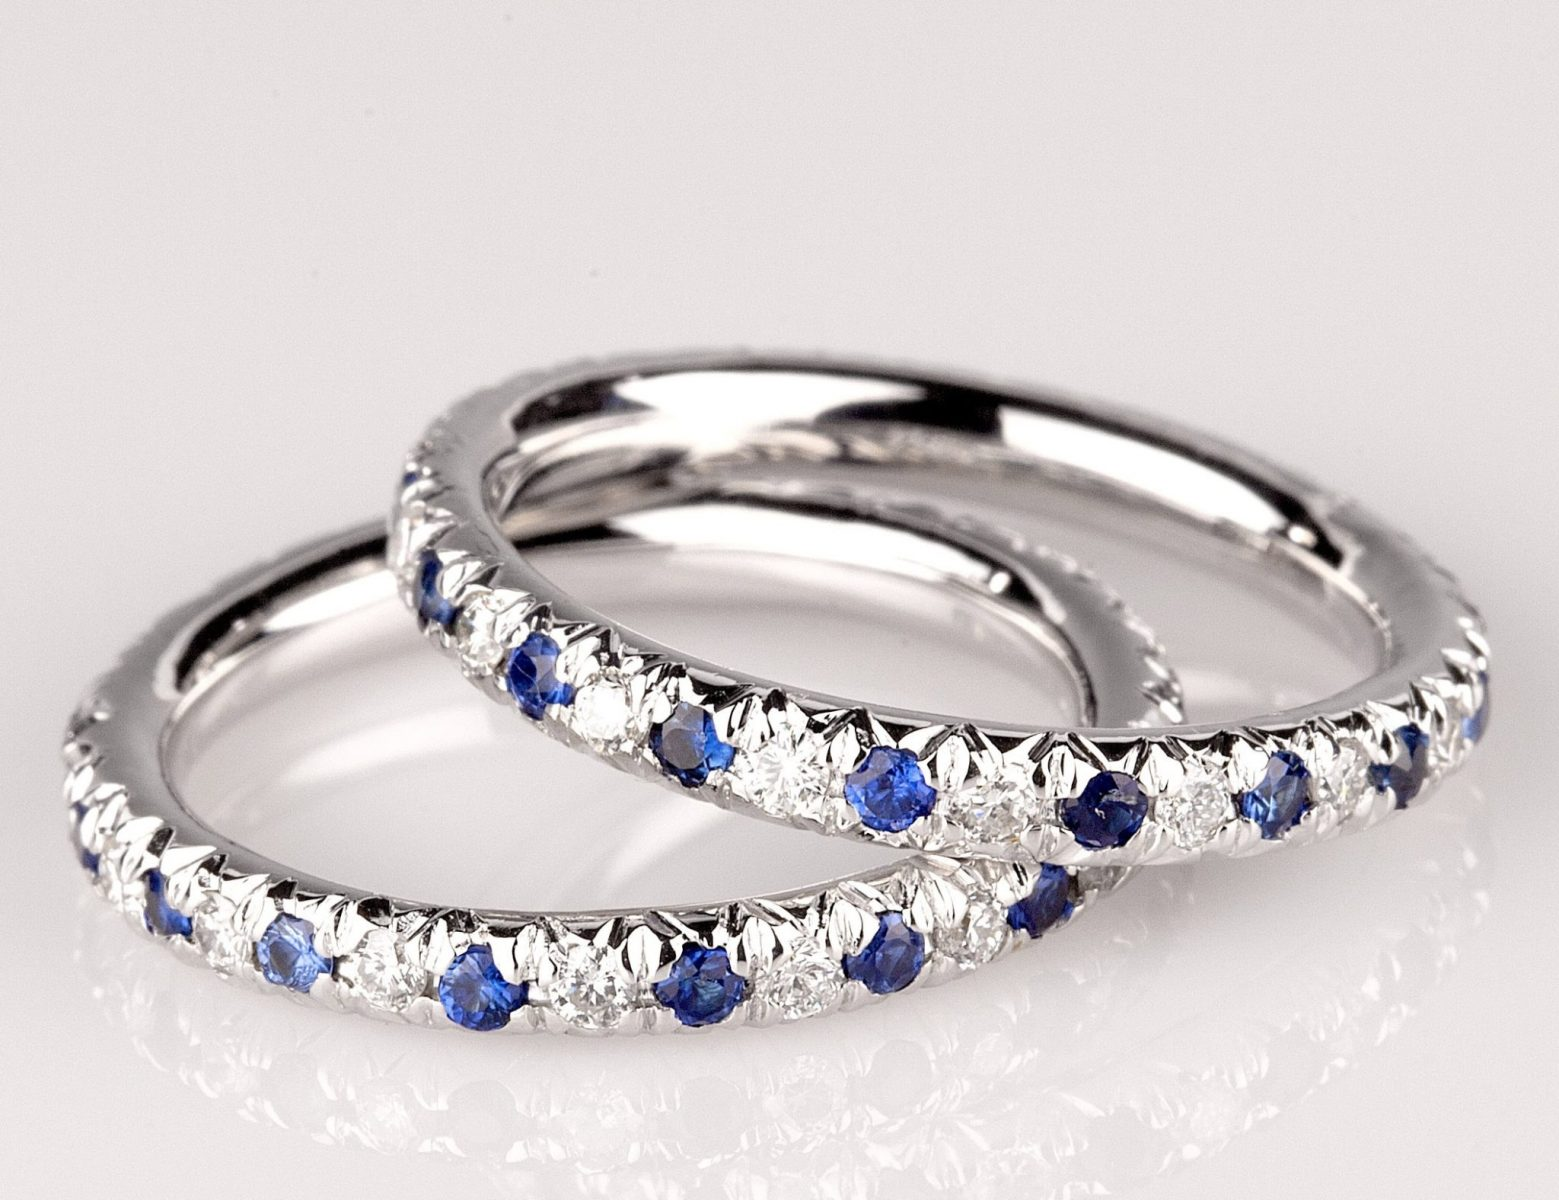 wedding the optimised diamonds fine jewellery engagement bands cost shop band diamond rings platinum square